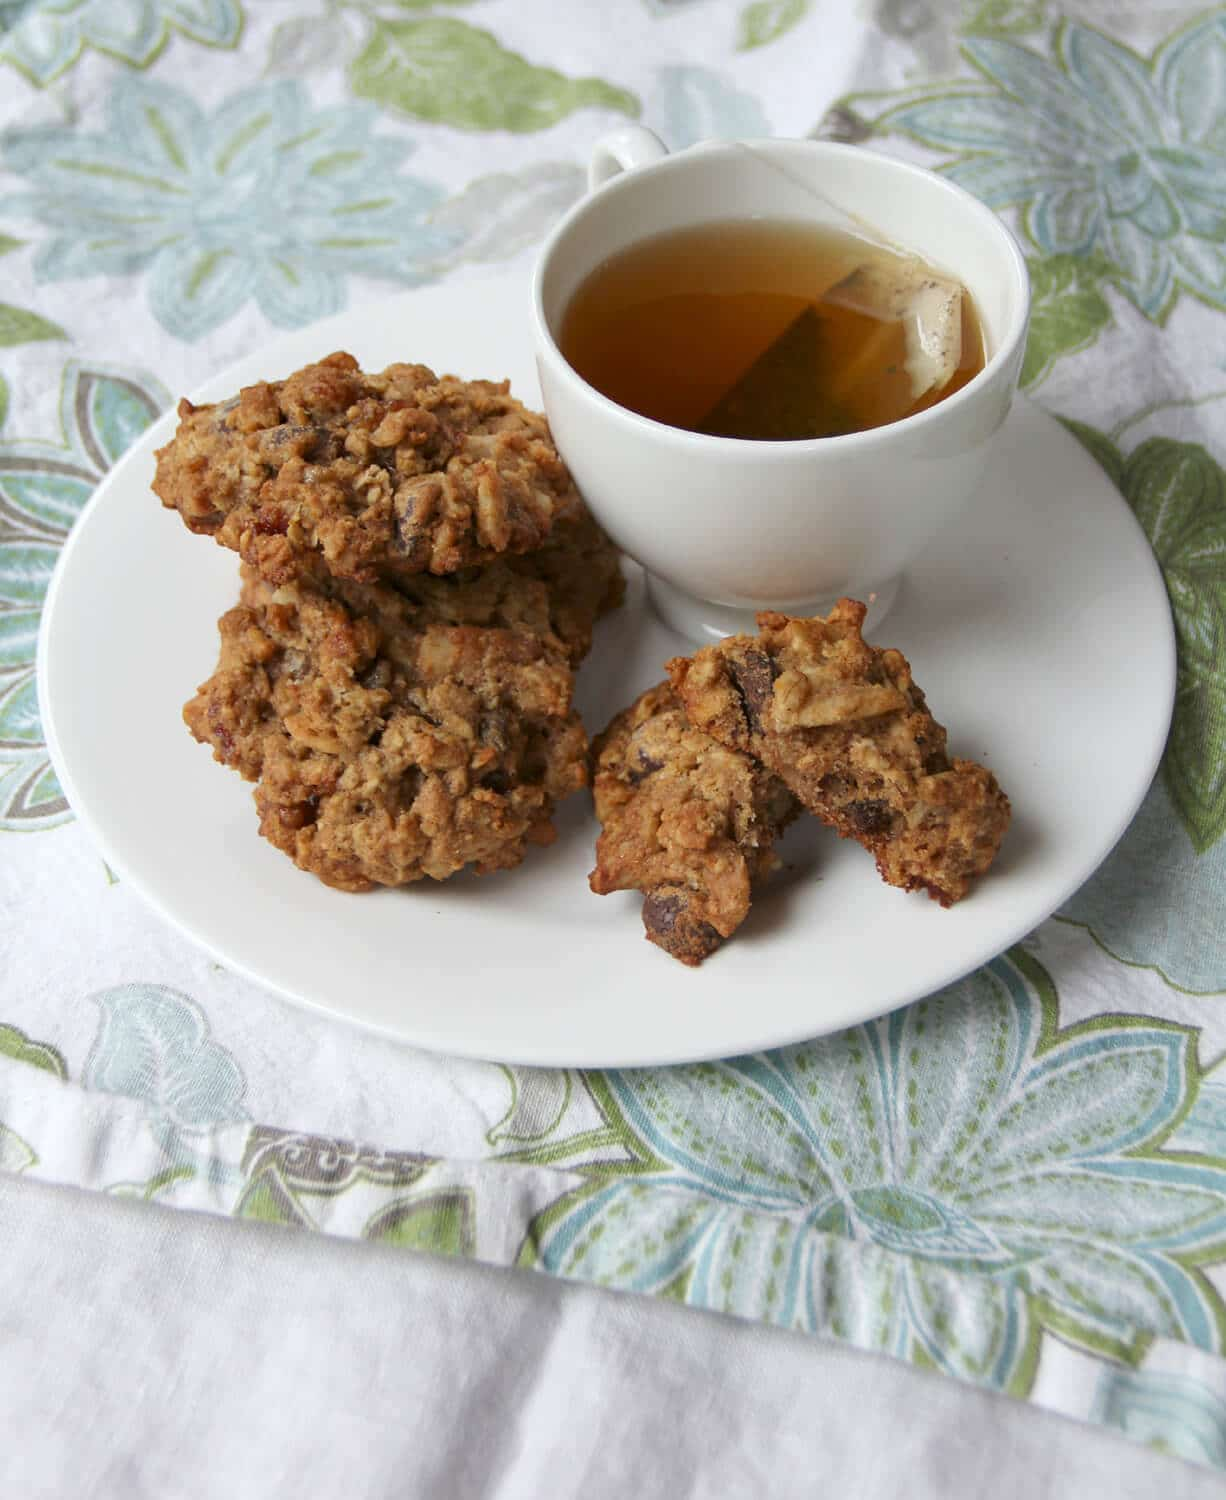 Hearty, healthy breakfast cookies made with whole wheat flour and filled with dates, walnuts, oats, and chocolate.